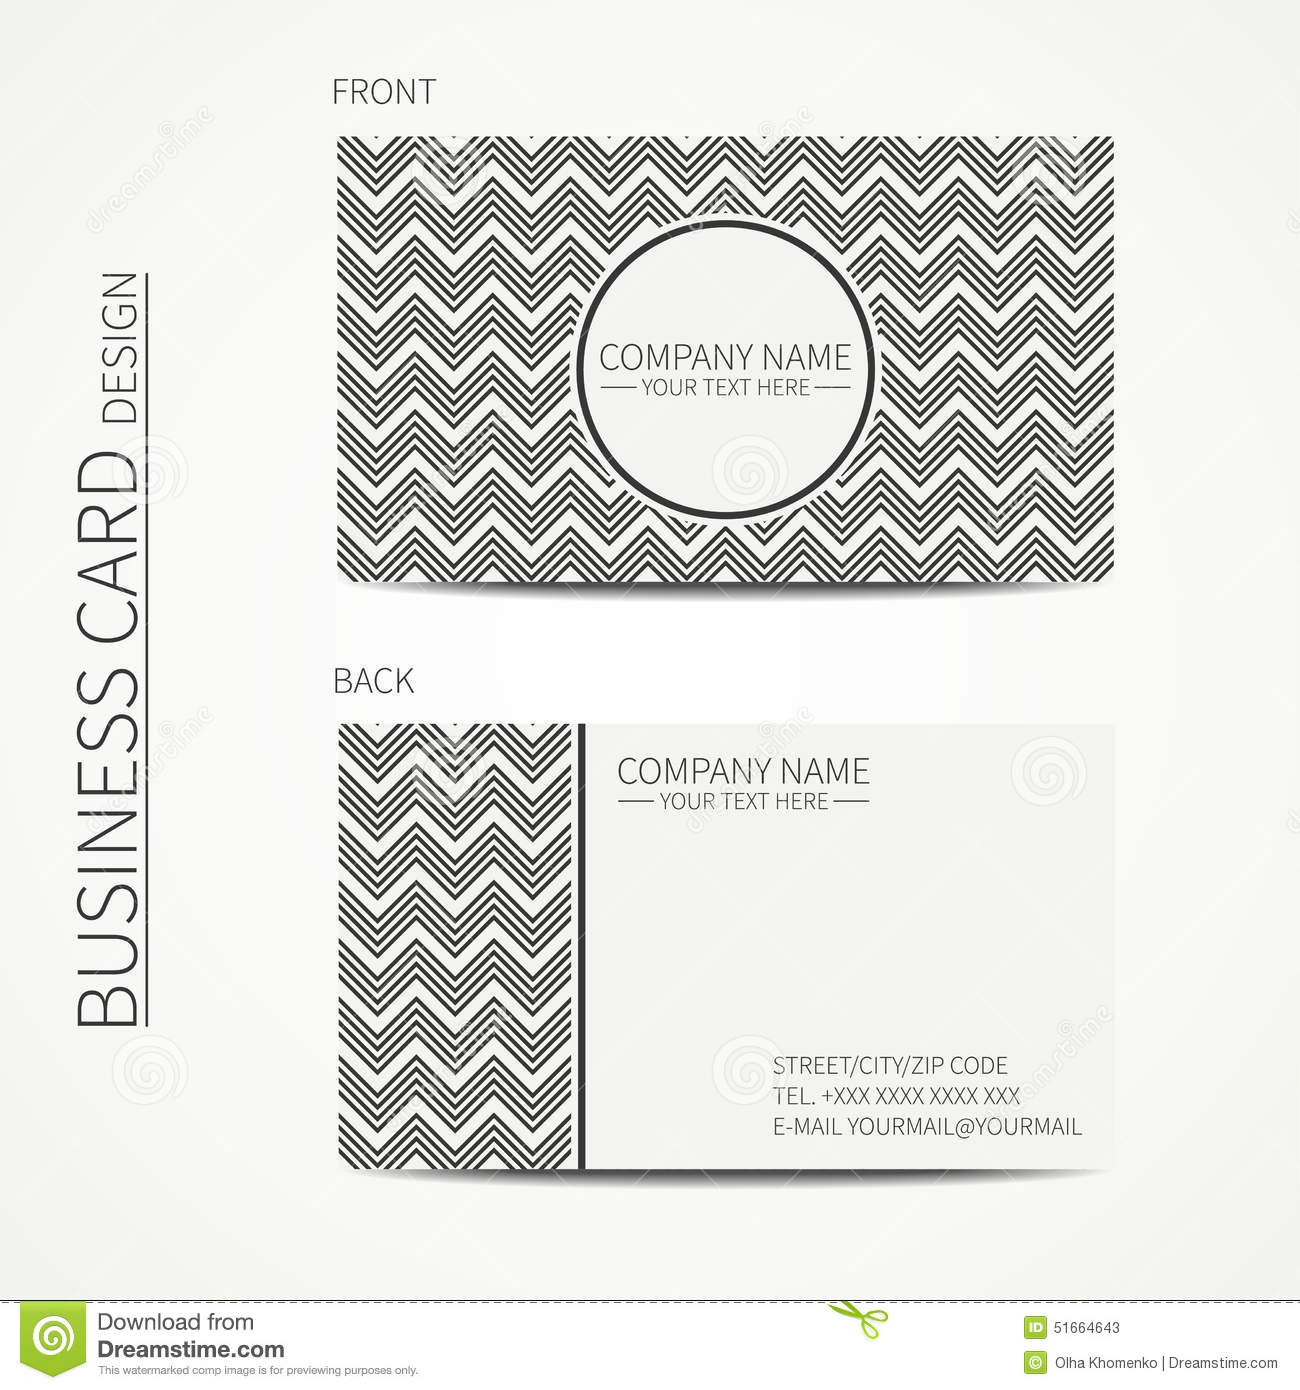 Line Card Examples: Geometric Monochrome Business Card Template With Vector